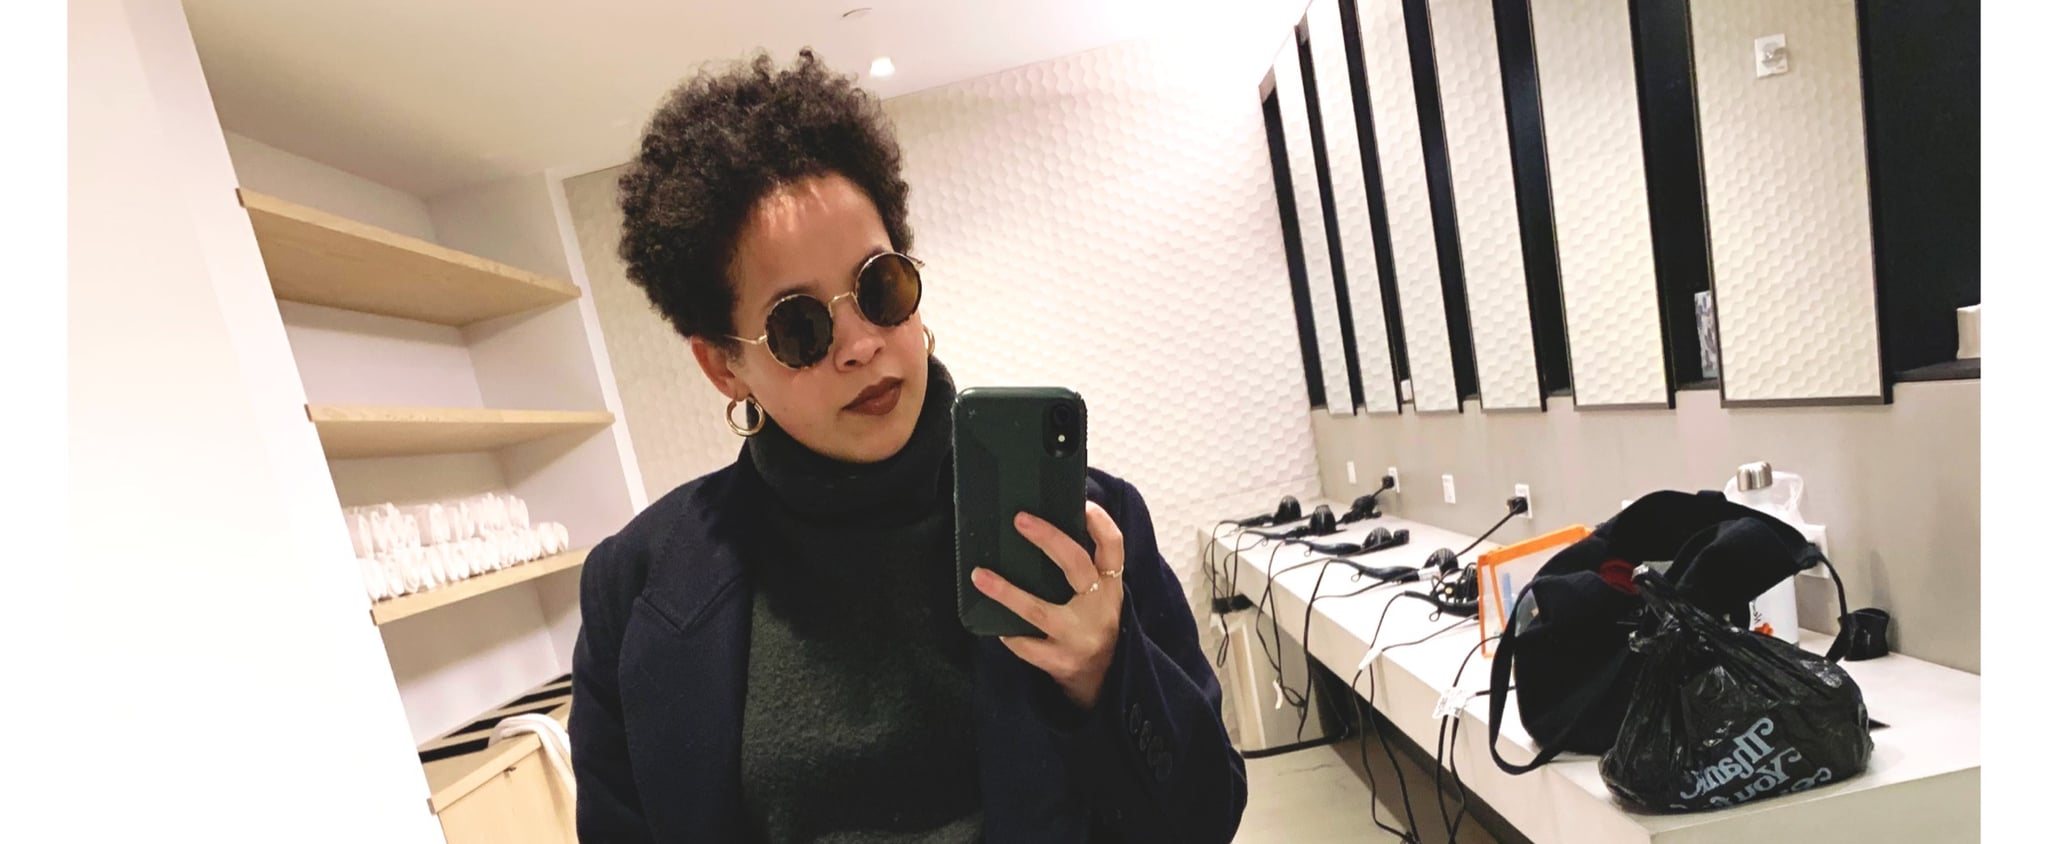 Natural Hair in the Workplace and Corporate Culture